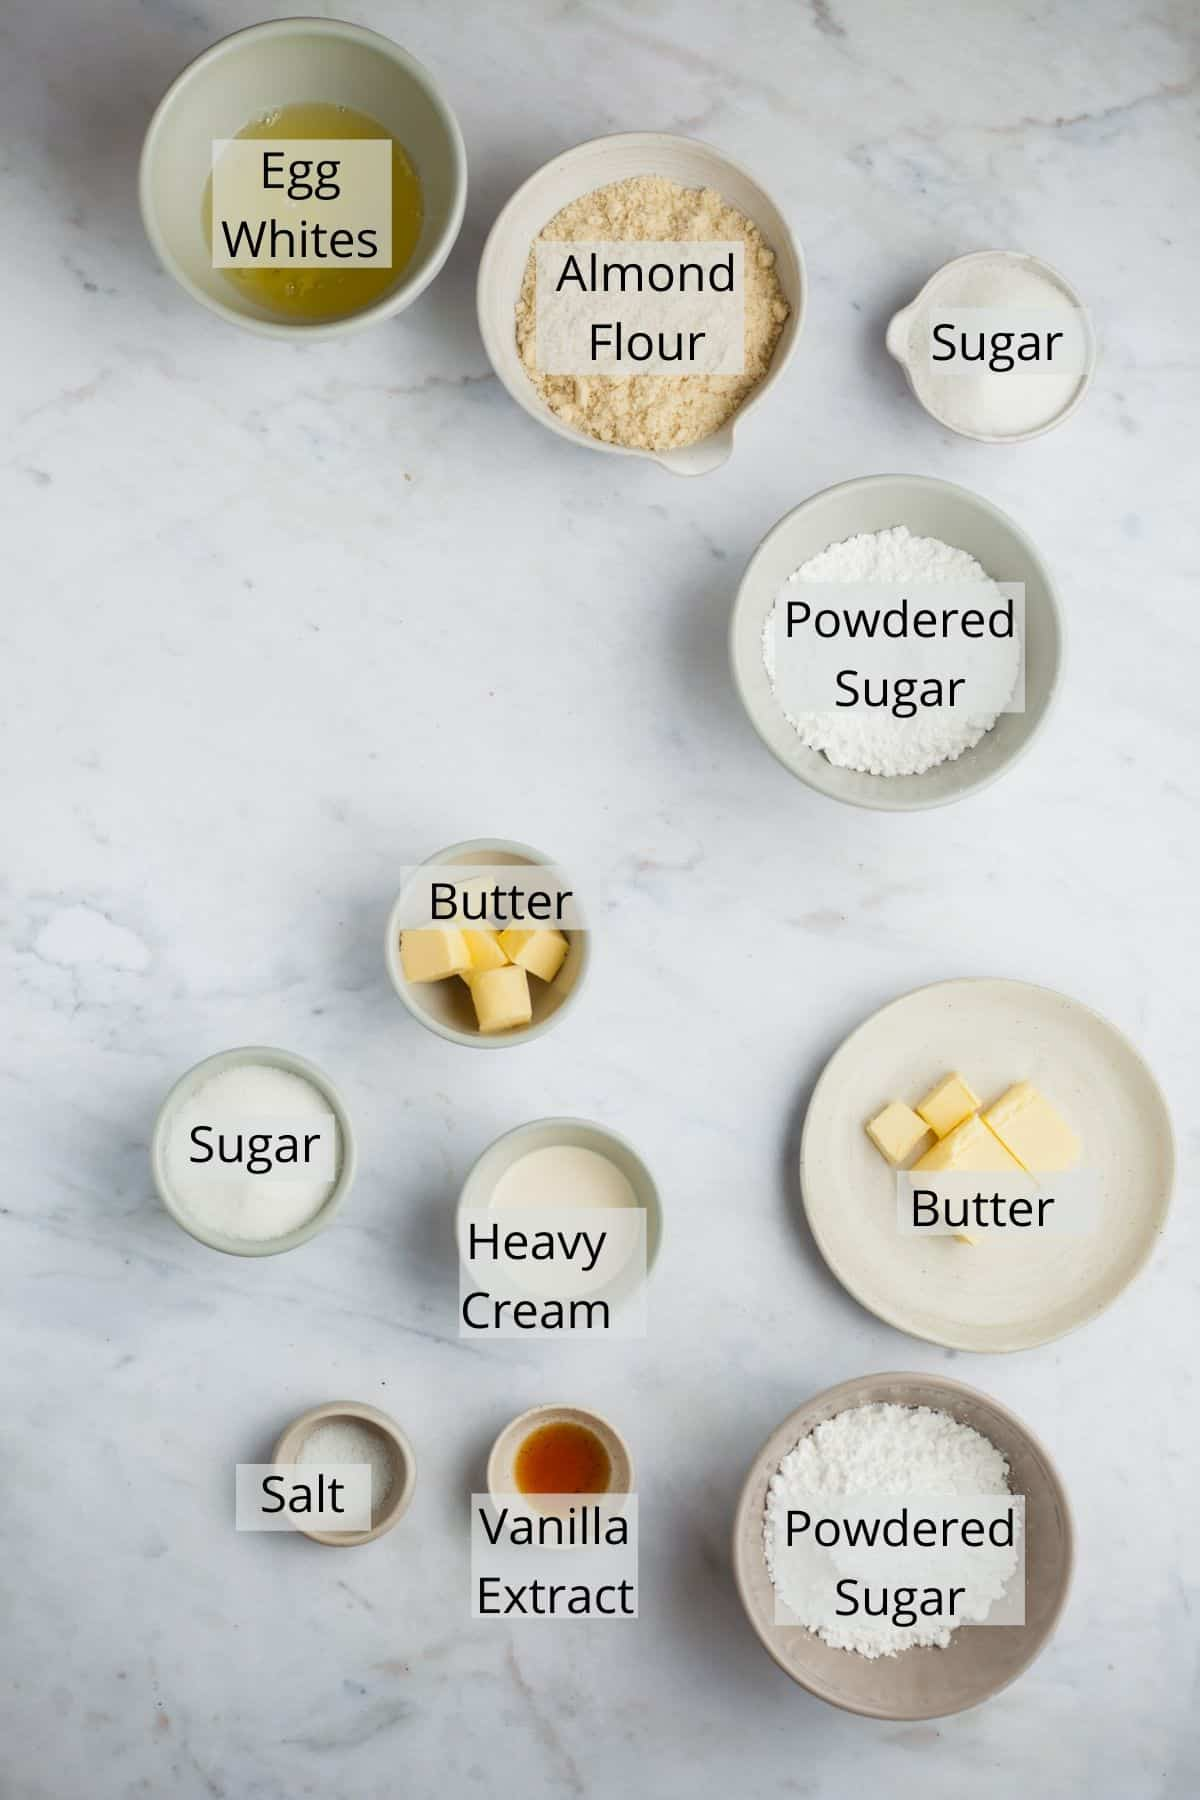 Ingredients needed for salted caramel macarons